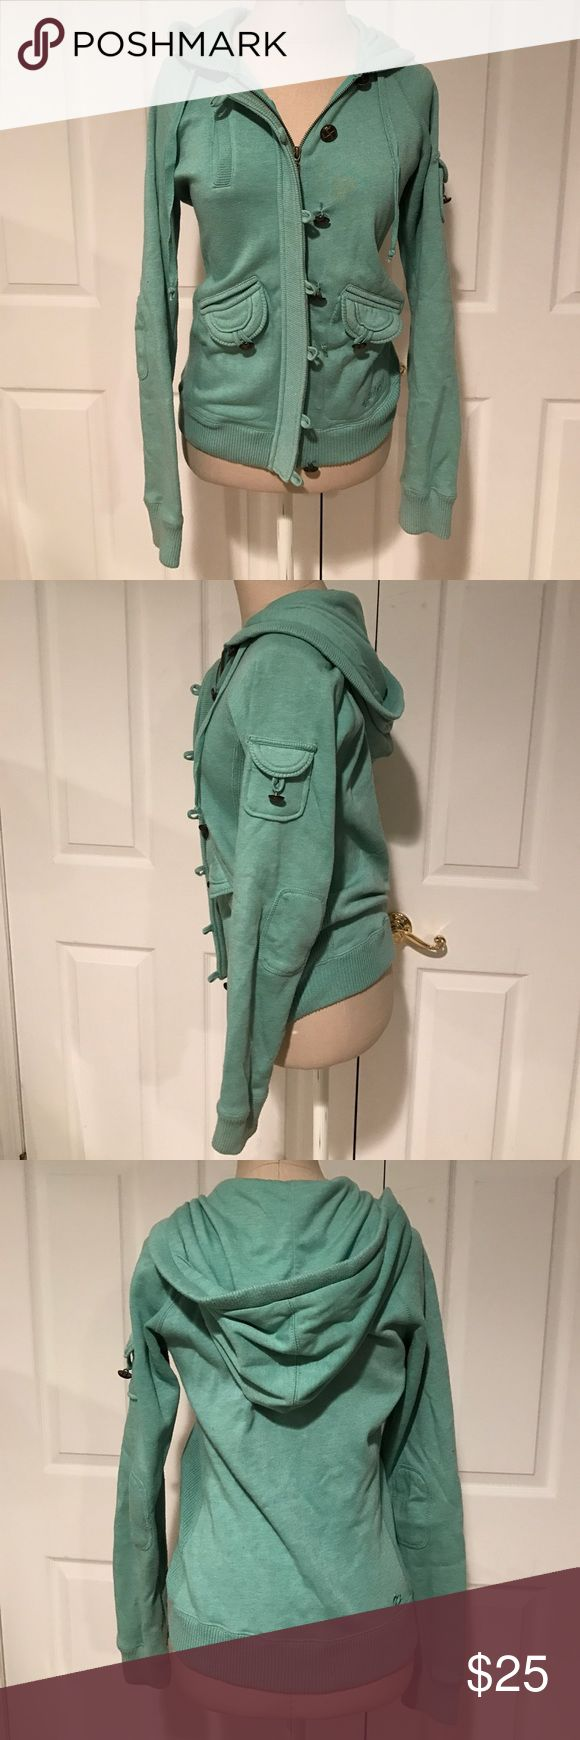 Green Billabong Zip-Up Hoodie Lightly used, mint green, zip-up hoodie with brown buttons (missing two buttons), two front pockets, pocket on left sleeve Billabong Jackets & Coats